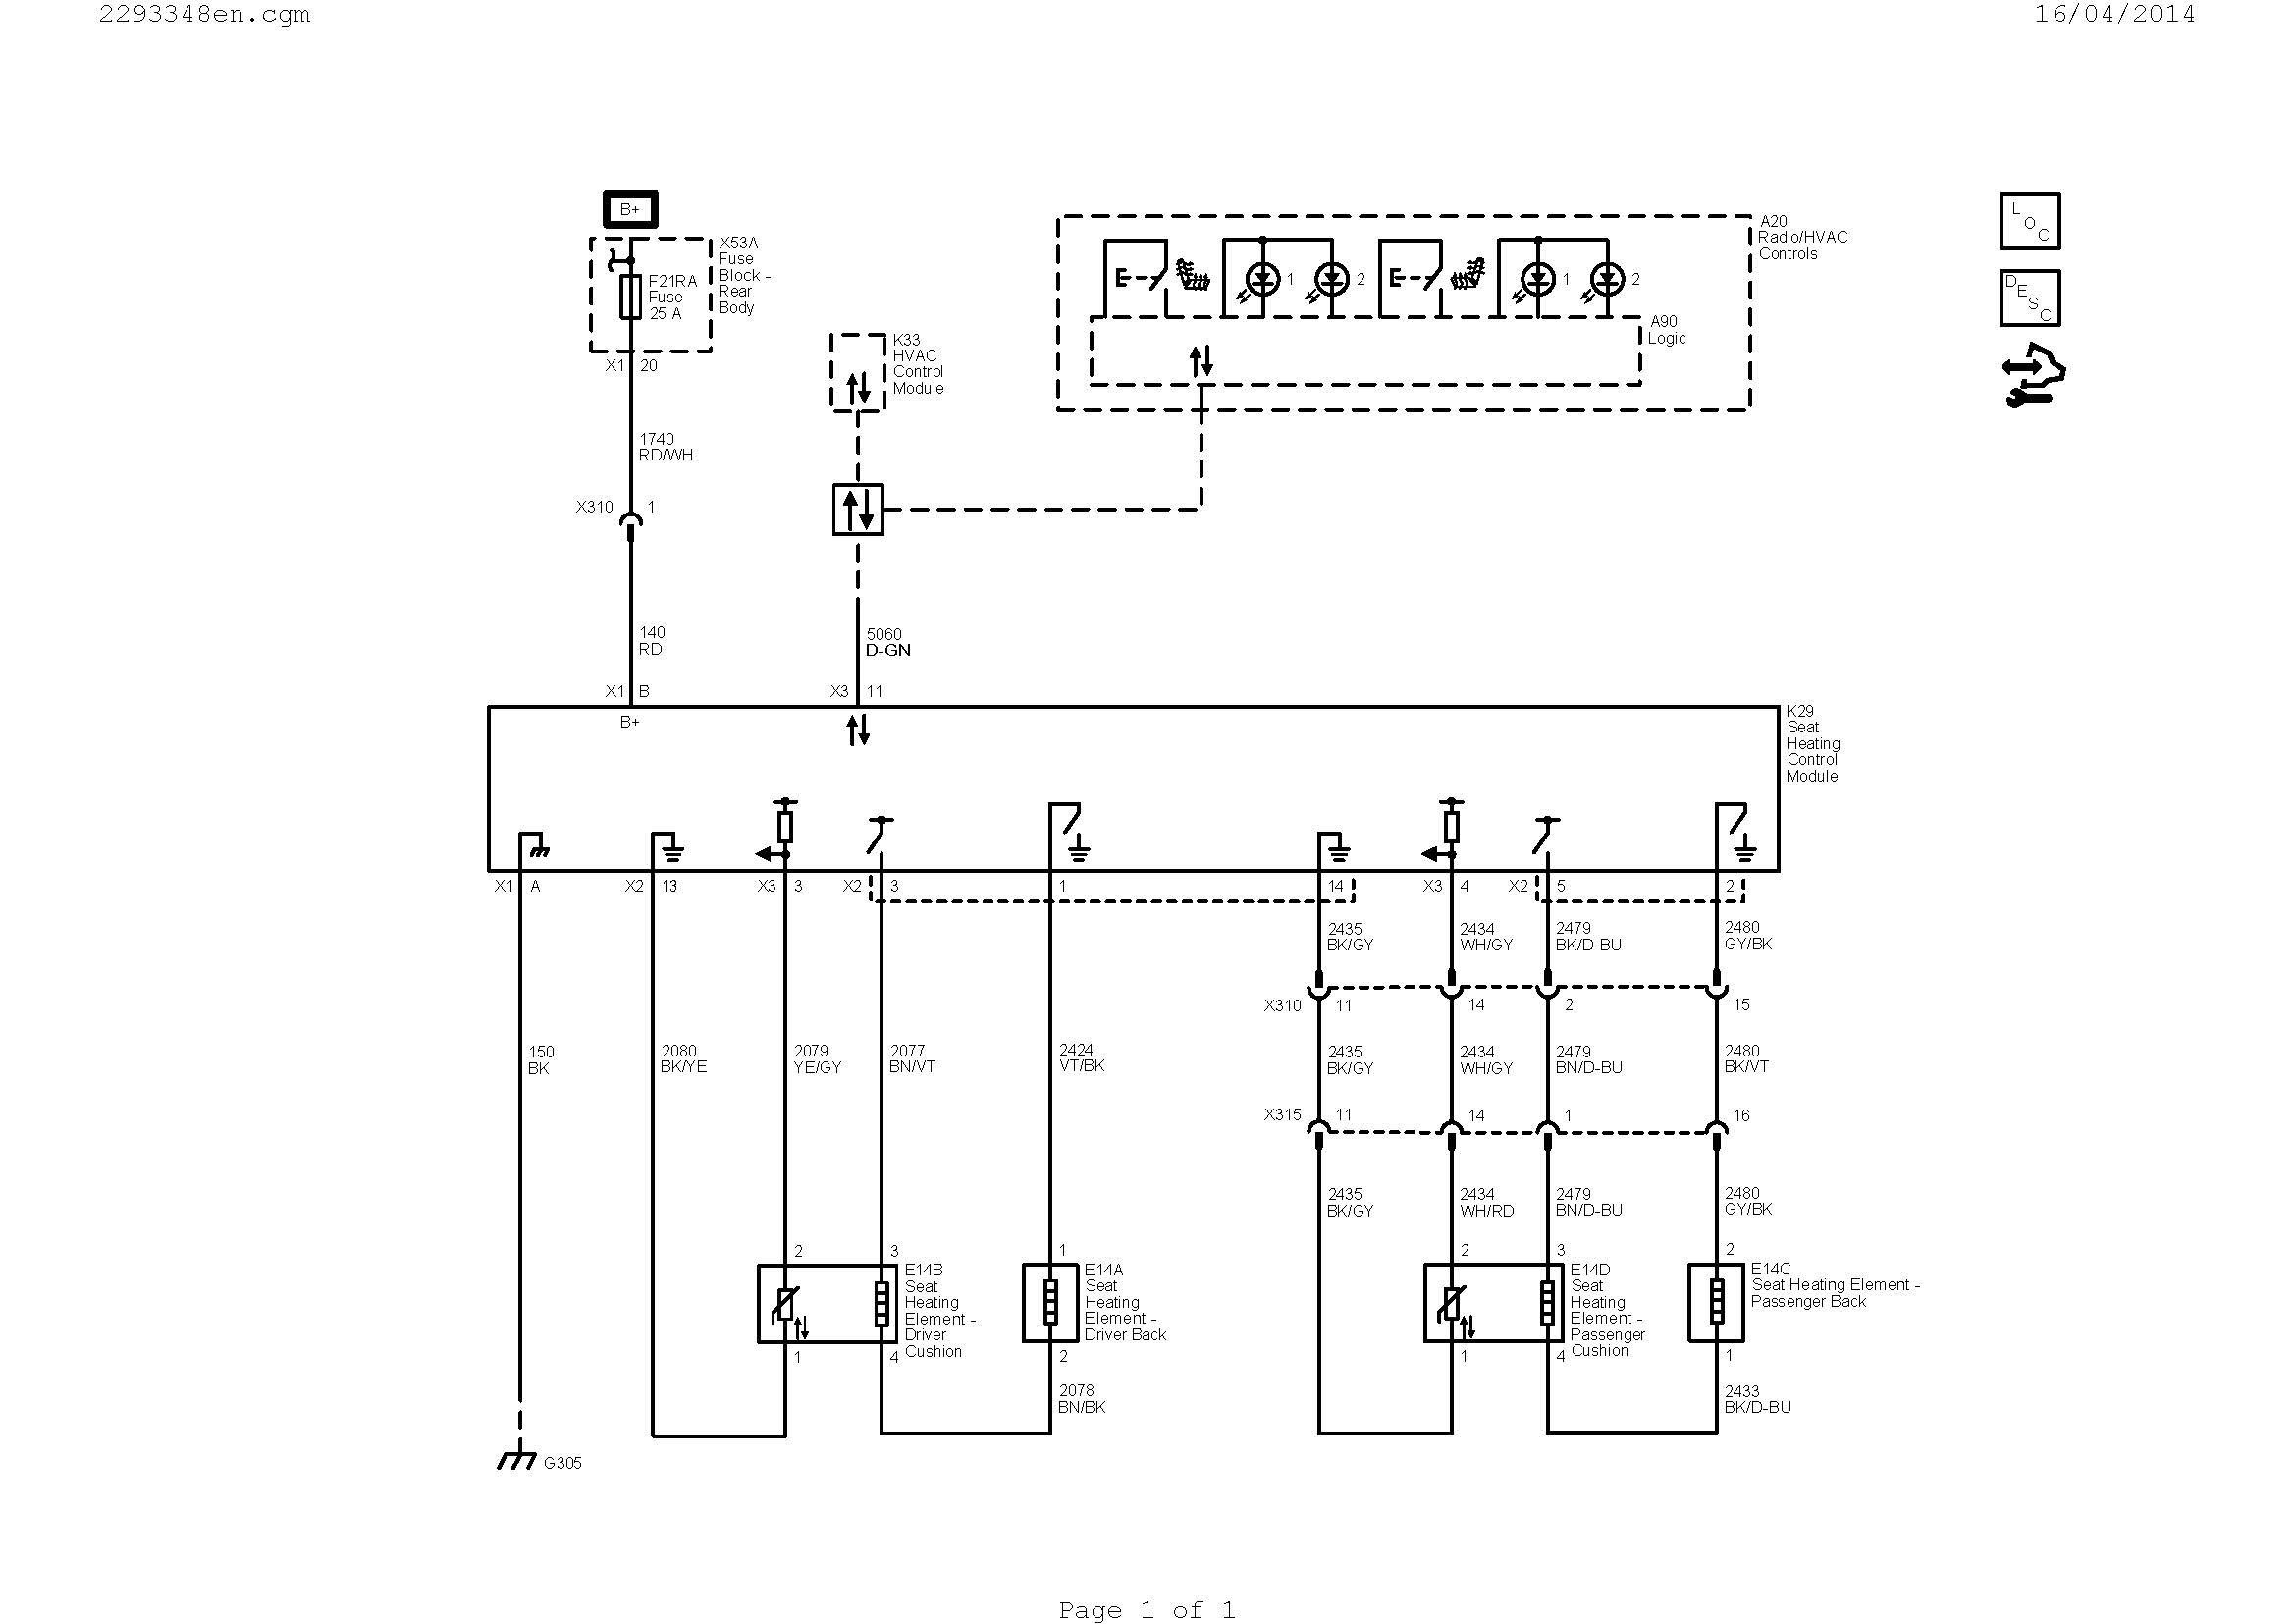 Wiring Diagram For The Nest Thermostat Sample - The Nest Thermostat Wiring Diagram